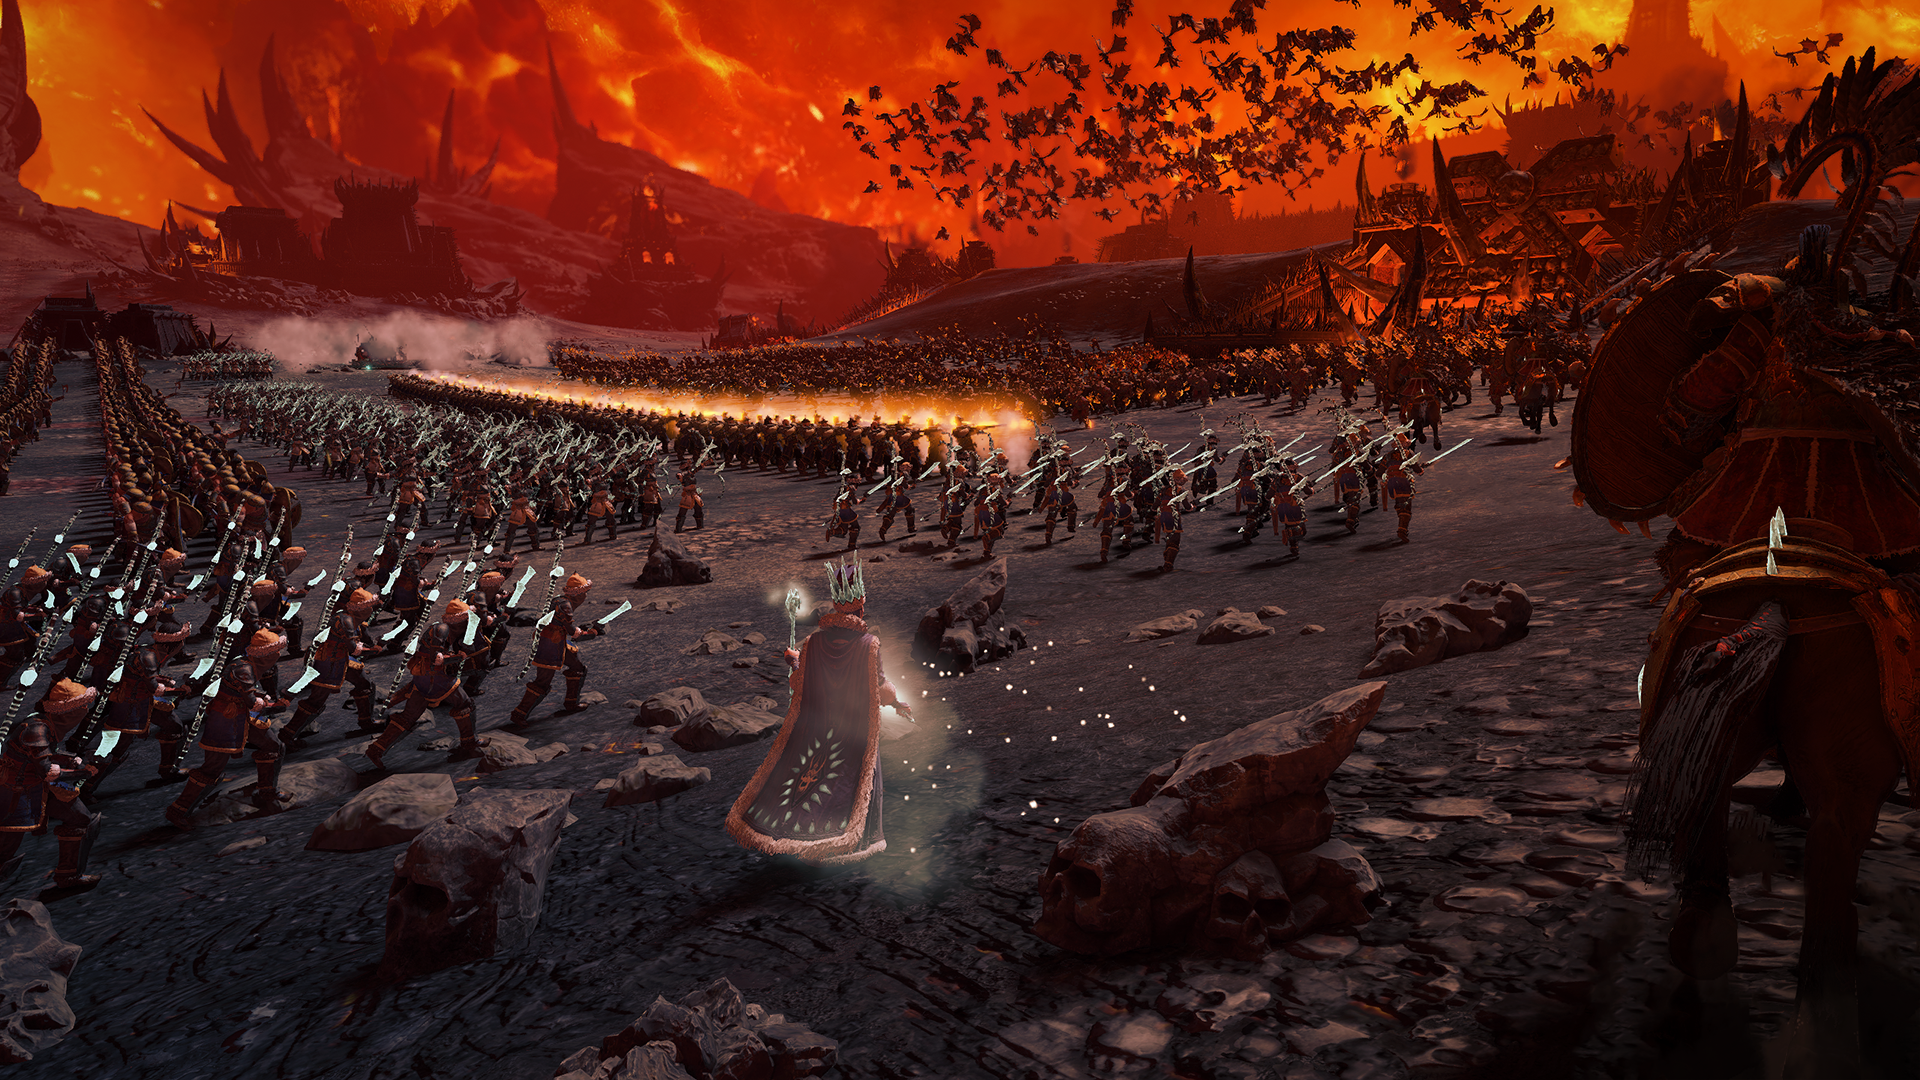 An army advances at a enemy fortress in a firey landscape.